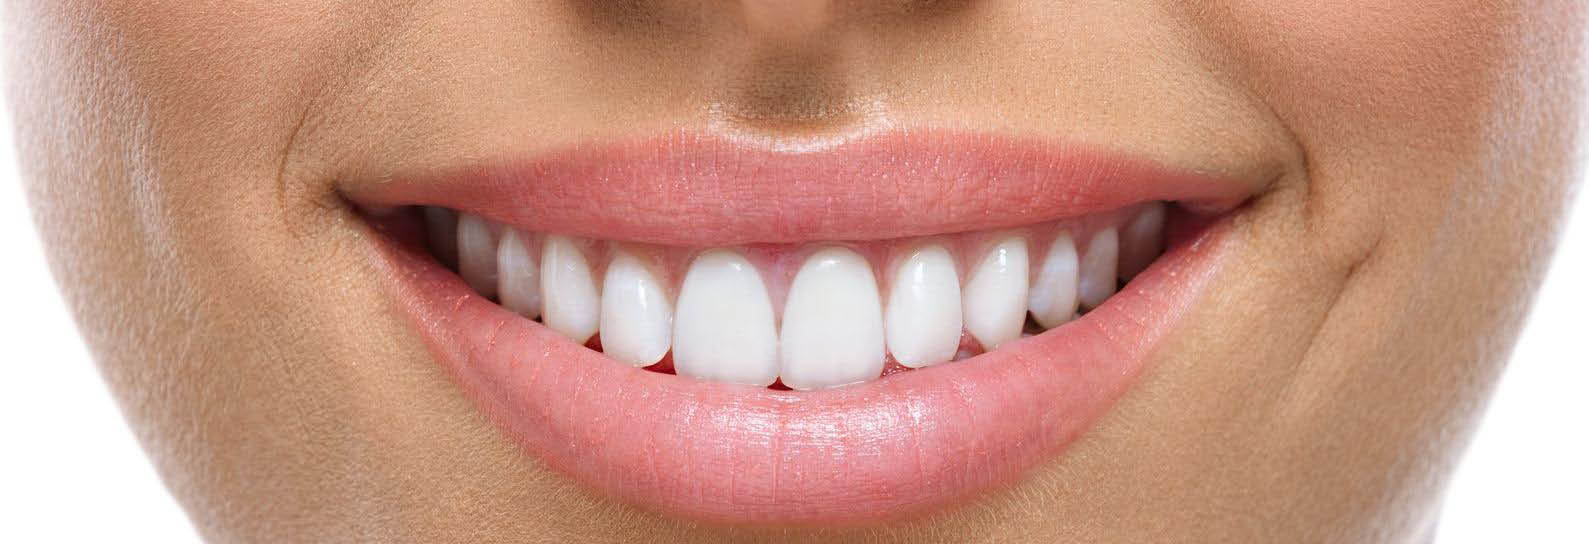 Ask us how you can brighten & whiten your teeth for free at Smile Boutique banner